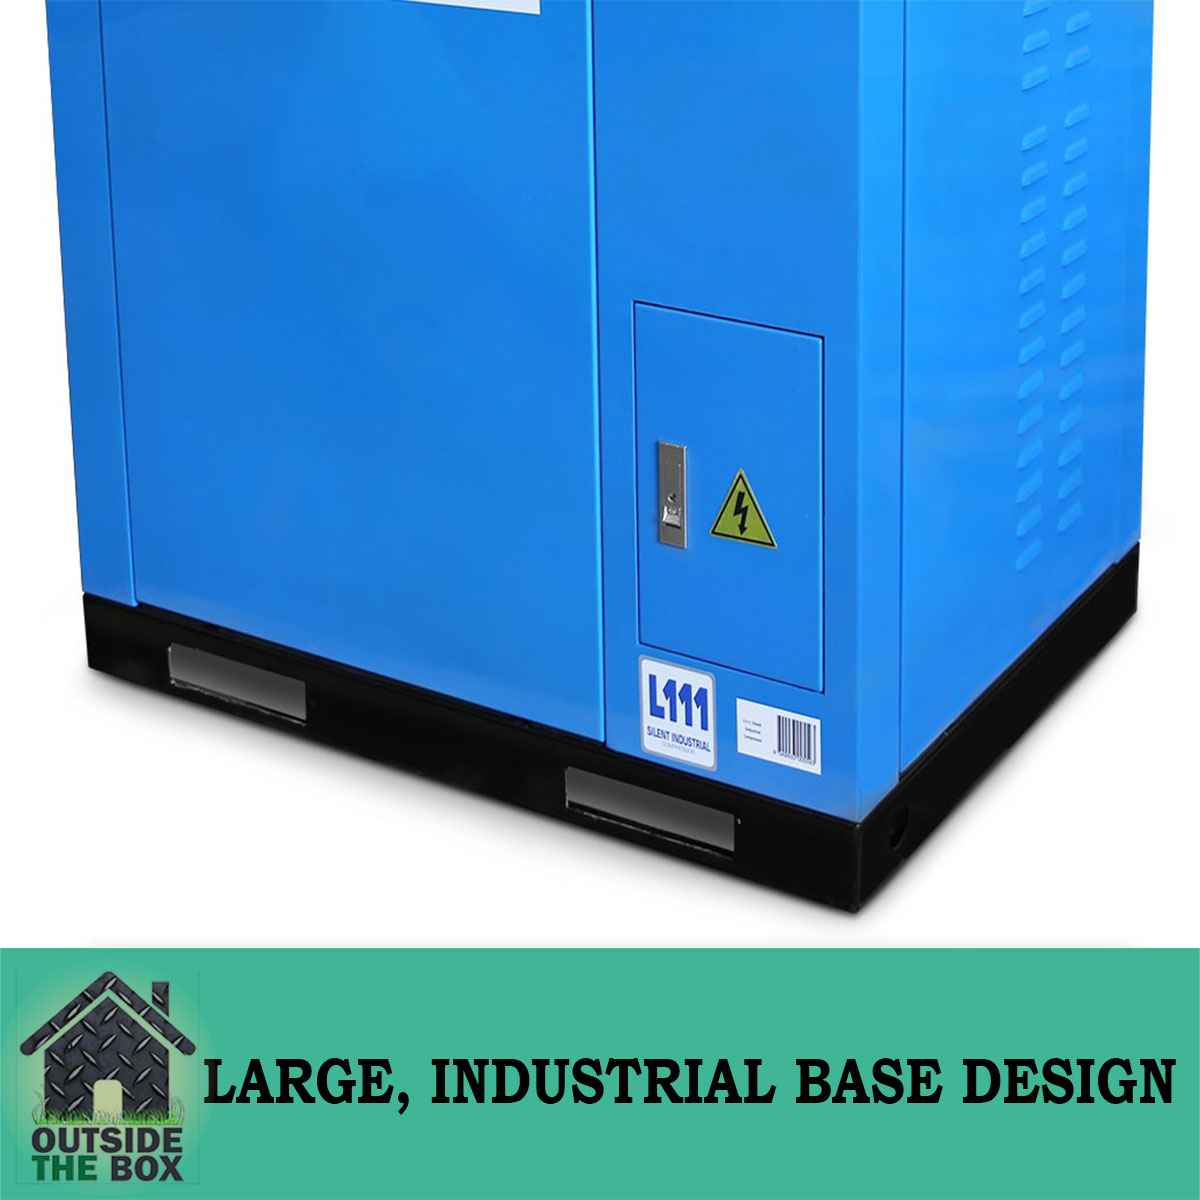 Lincoln L111 10hp Silent Air Compressor With Large Industrial And Electronic Circuit Design01 Design 3 Cylinders